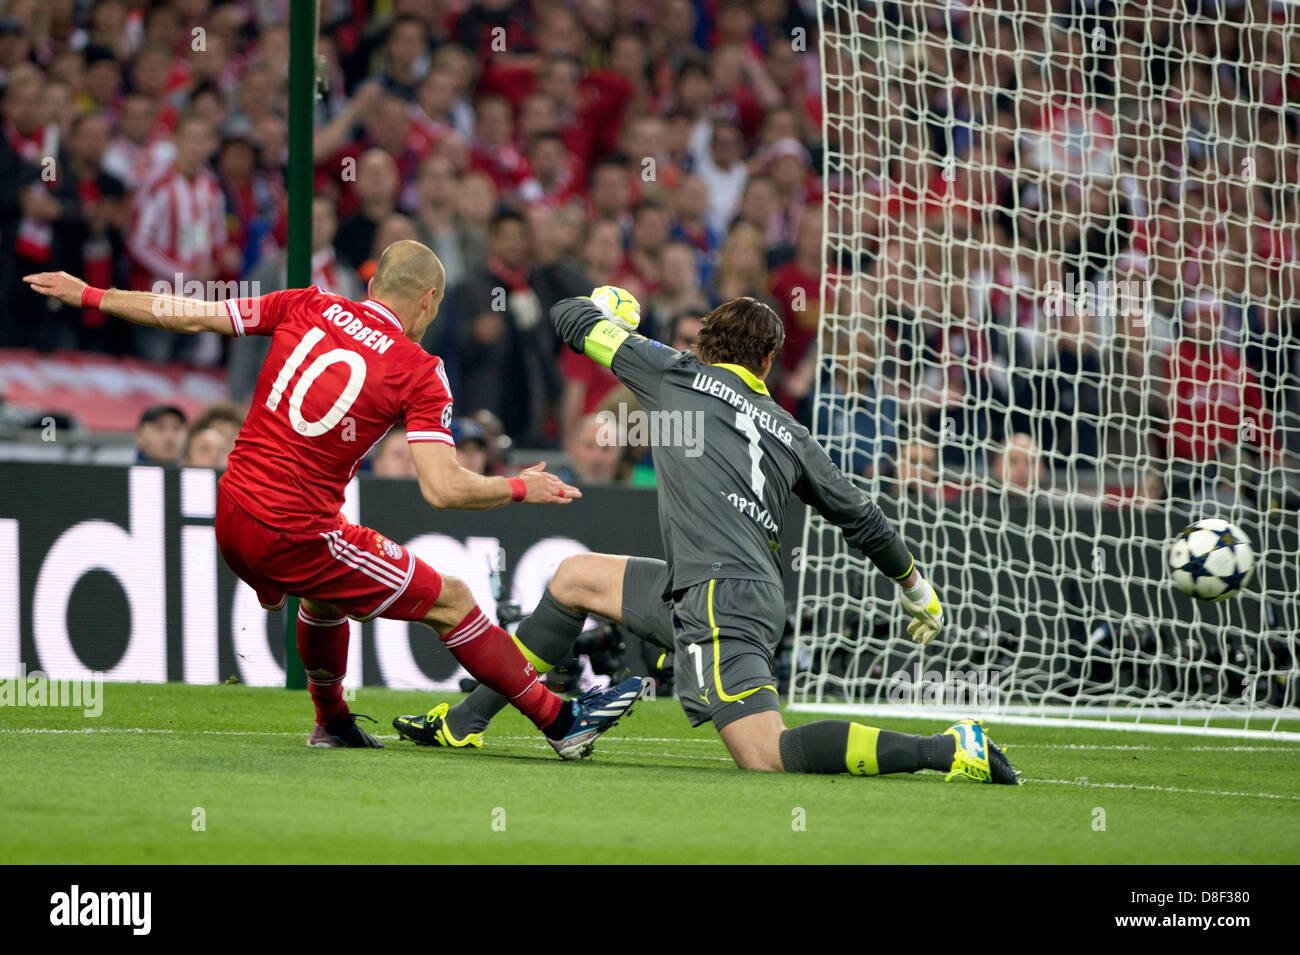 Arjen robben bayern roman weidenfeller dortmund may 25 2013 arjen robben bayern roman weidenfeller dortmund may 25 2013 football soccer arjen robben of bayern munich assists their side first goal by voltagebd Choice Image